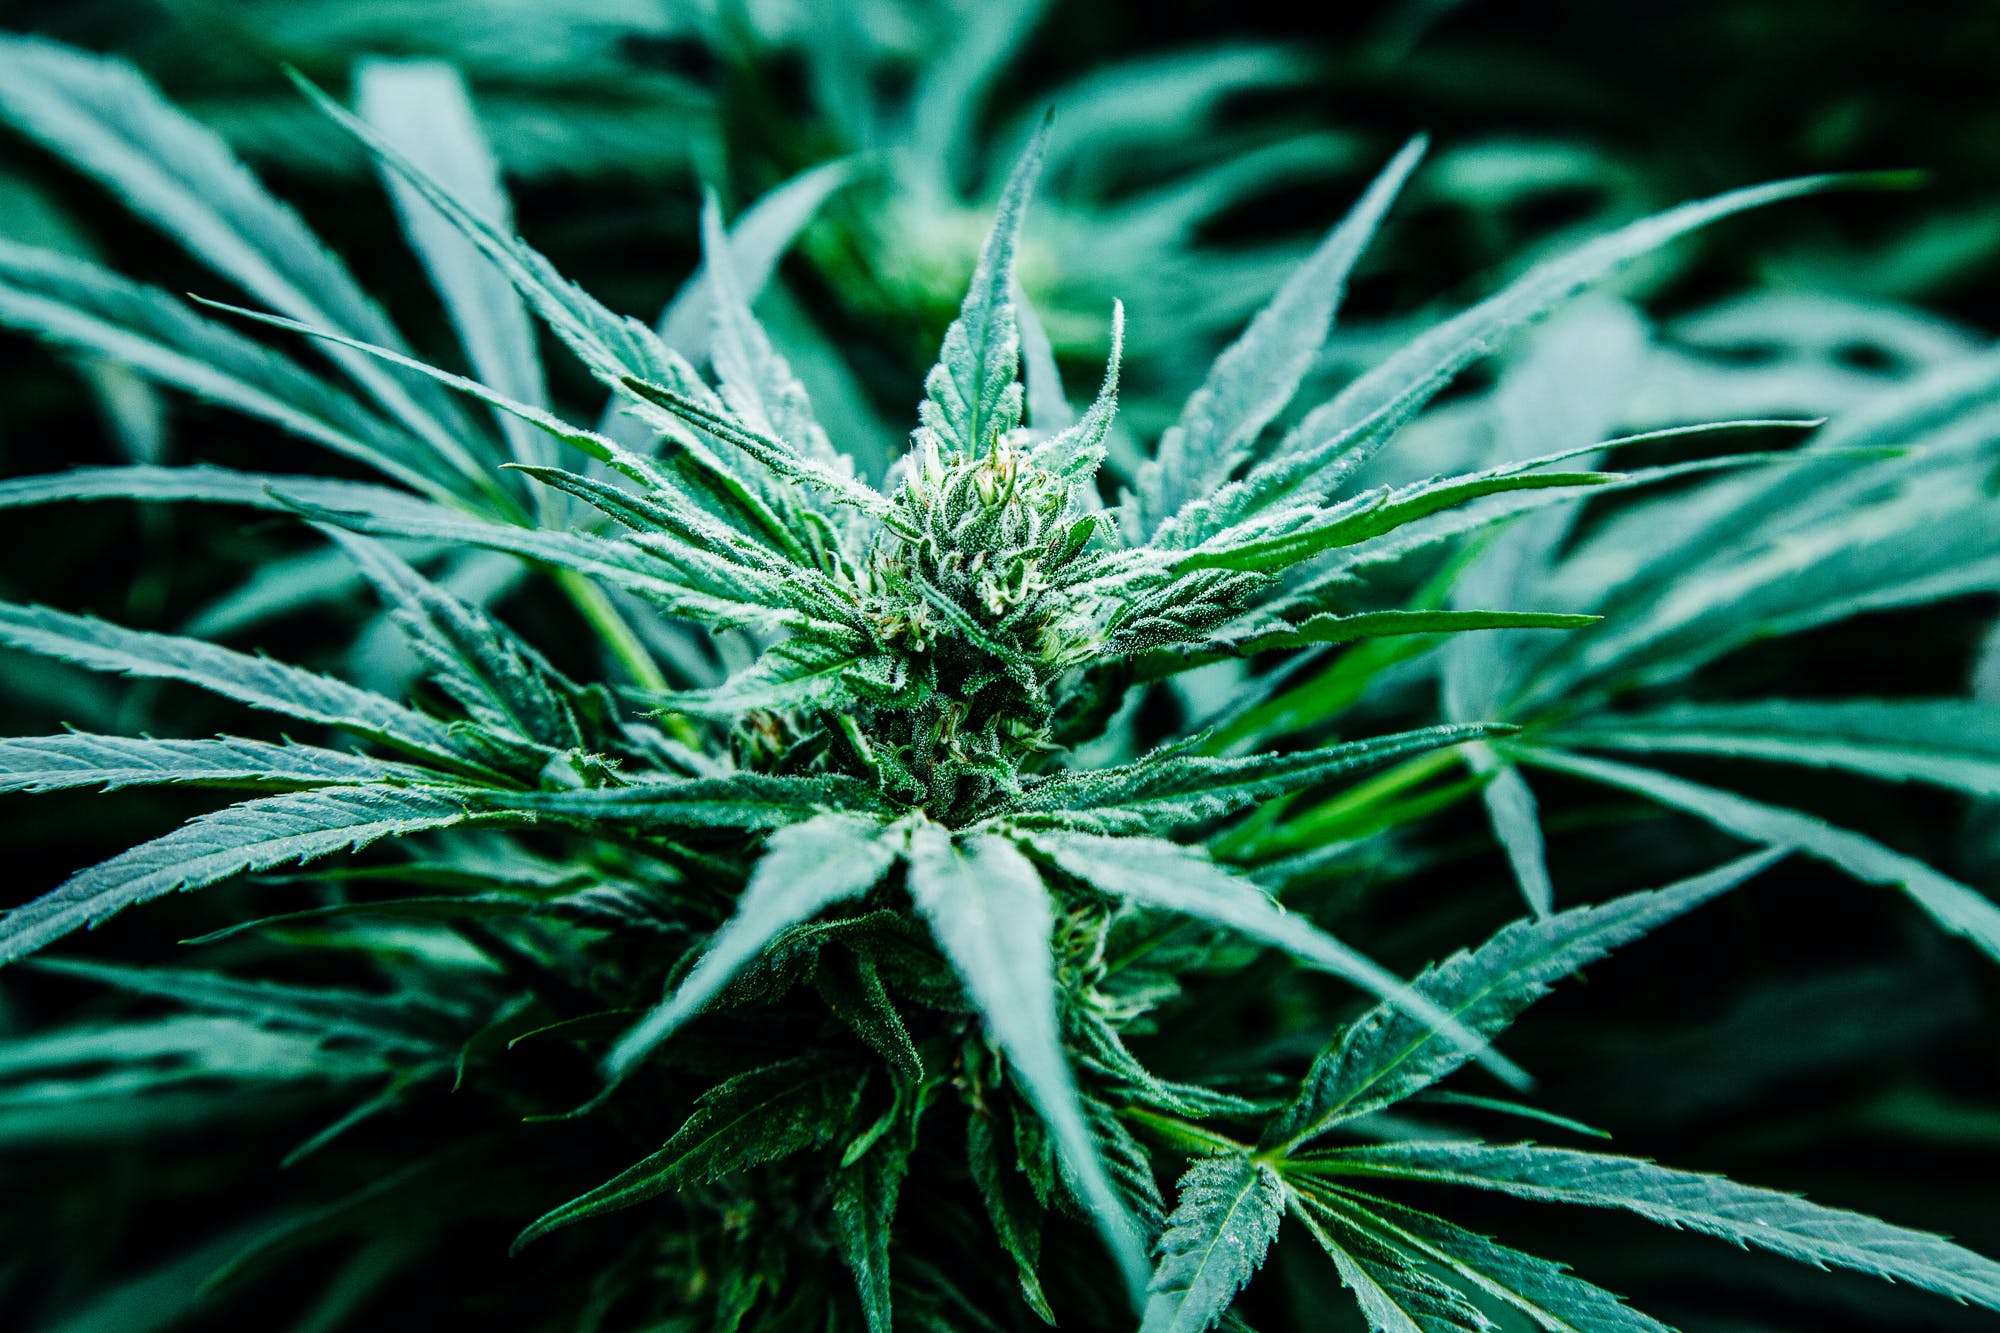 Pharmacielo could become a leader in the global medical cannabis market 23 Cannabis is Legal in Vermont, But Gifting it Isnt